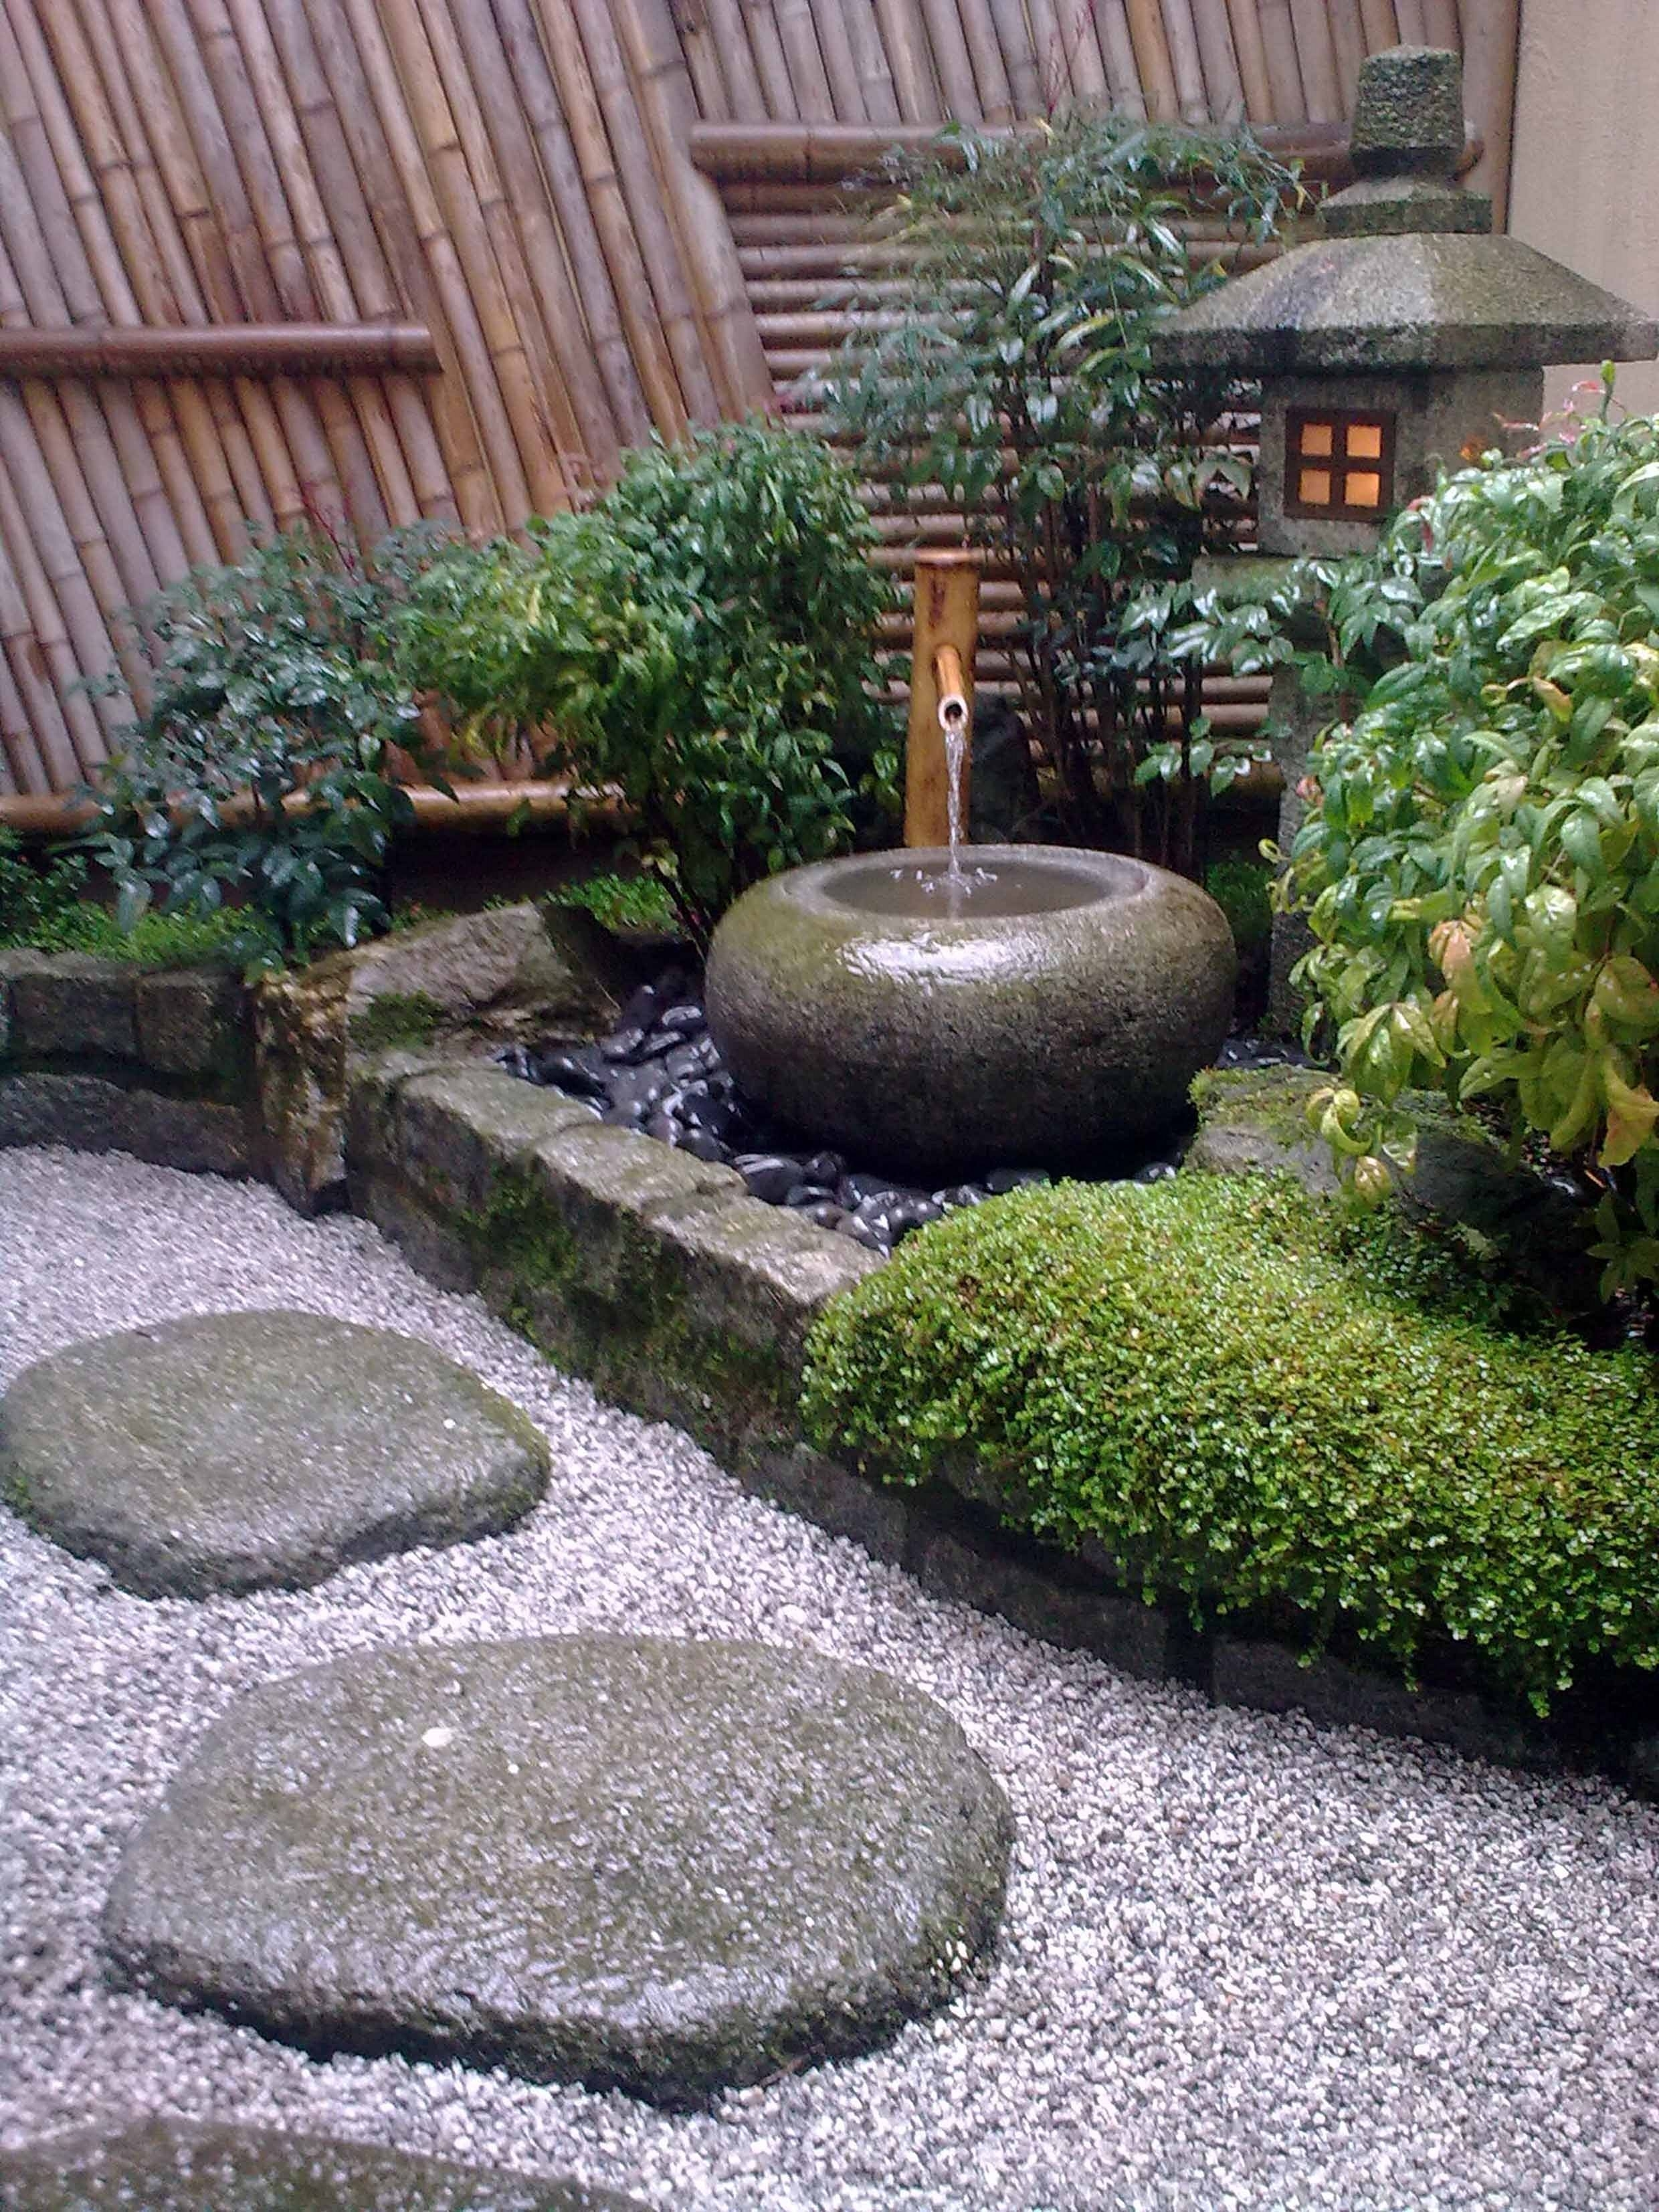 76 Beautiful Zen Garden Ideas For Backyard 400 | Japanese Gardens inside Examples Of Zen Garden